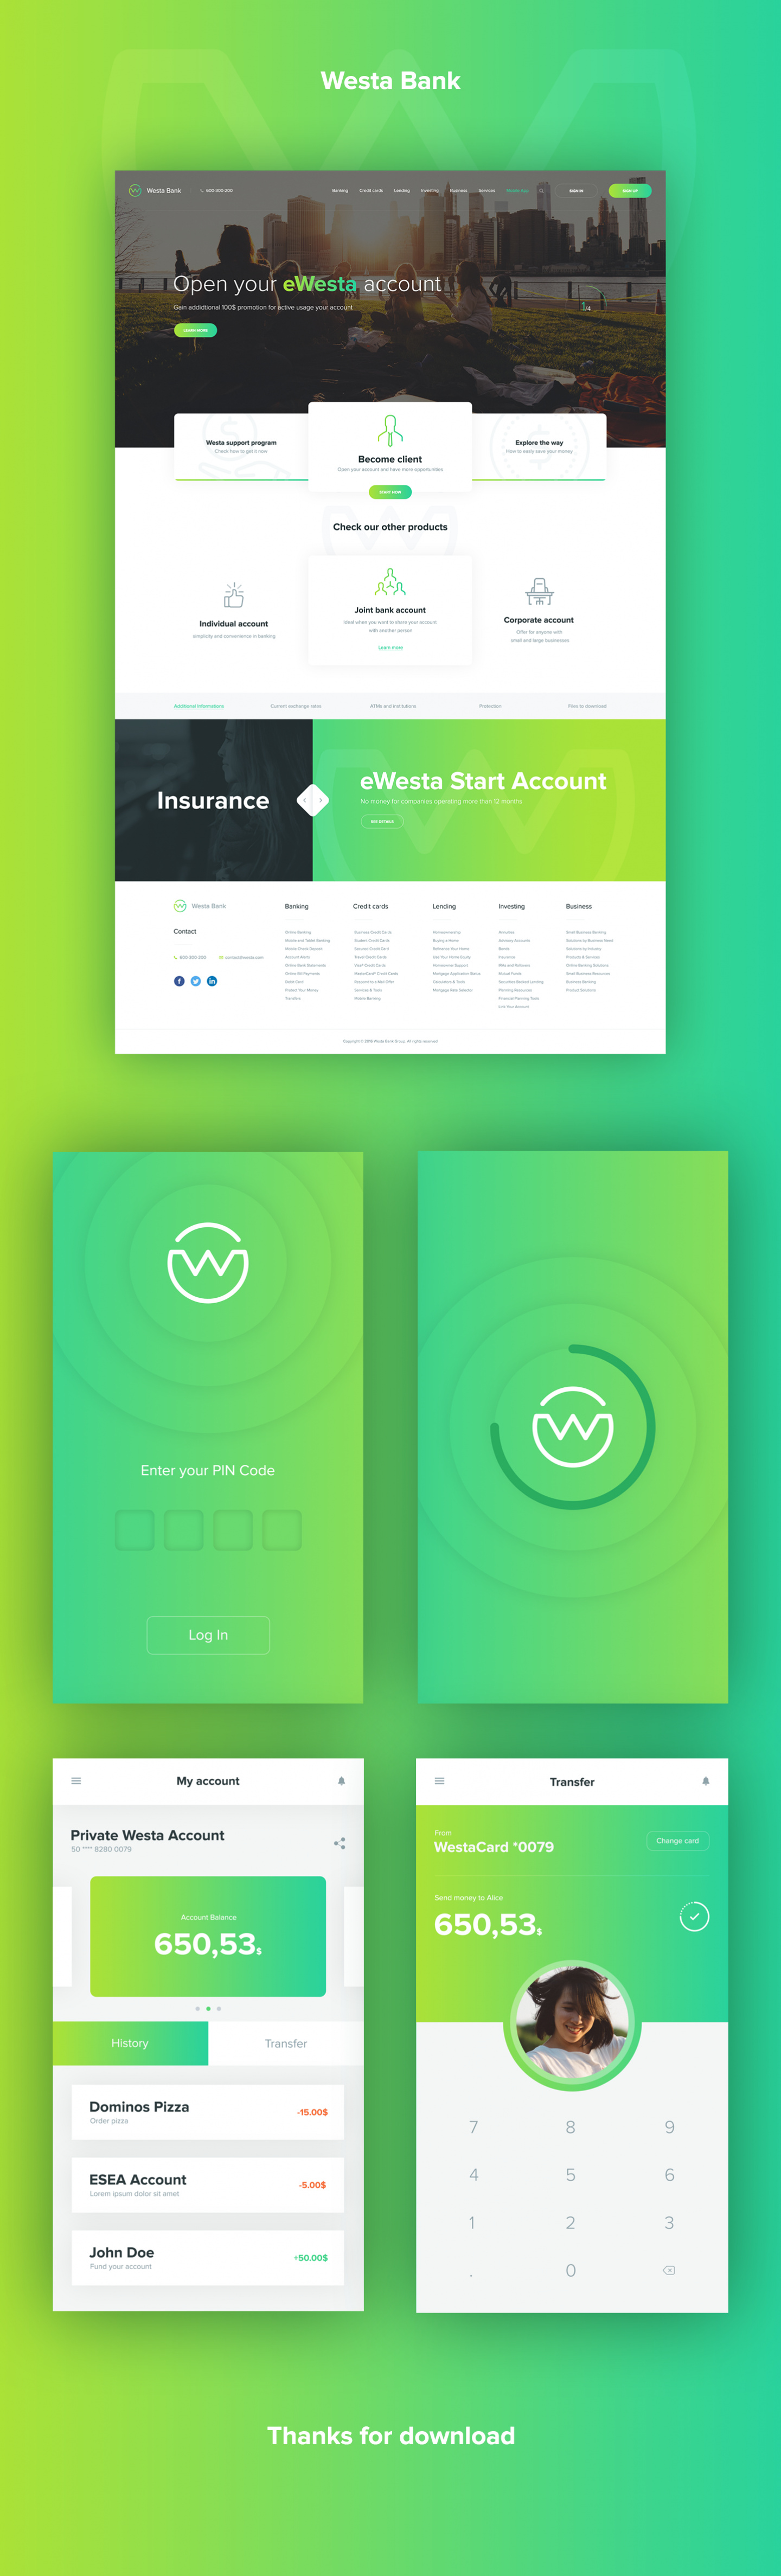 westa psd template and mobile app